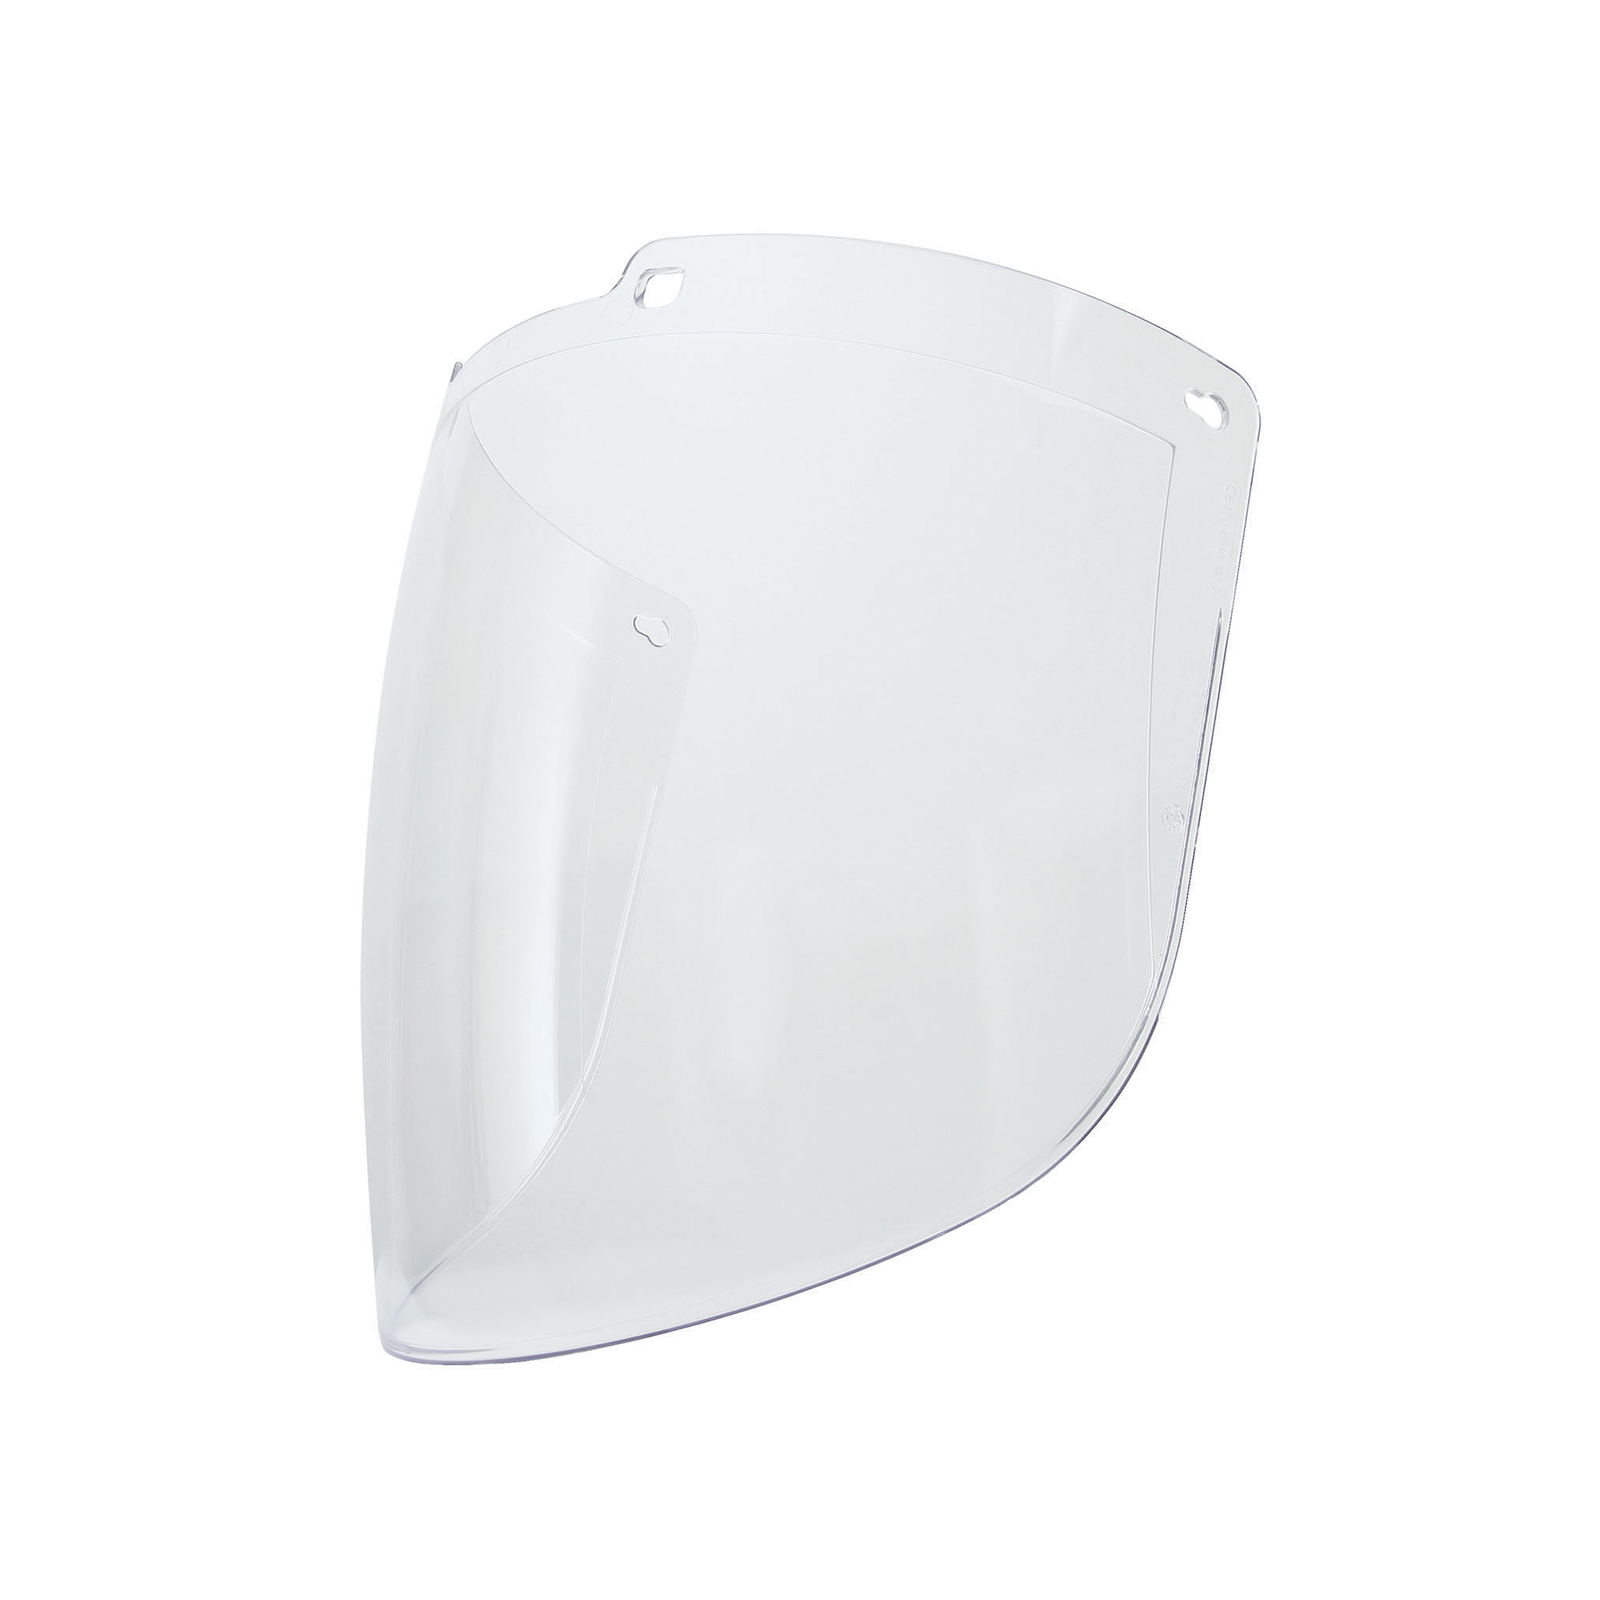 uvex_turboshield_visor_clear_s9550_s9555-45-Securovision